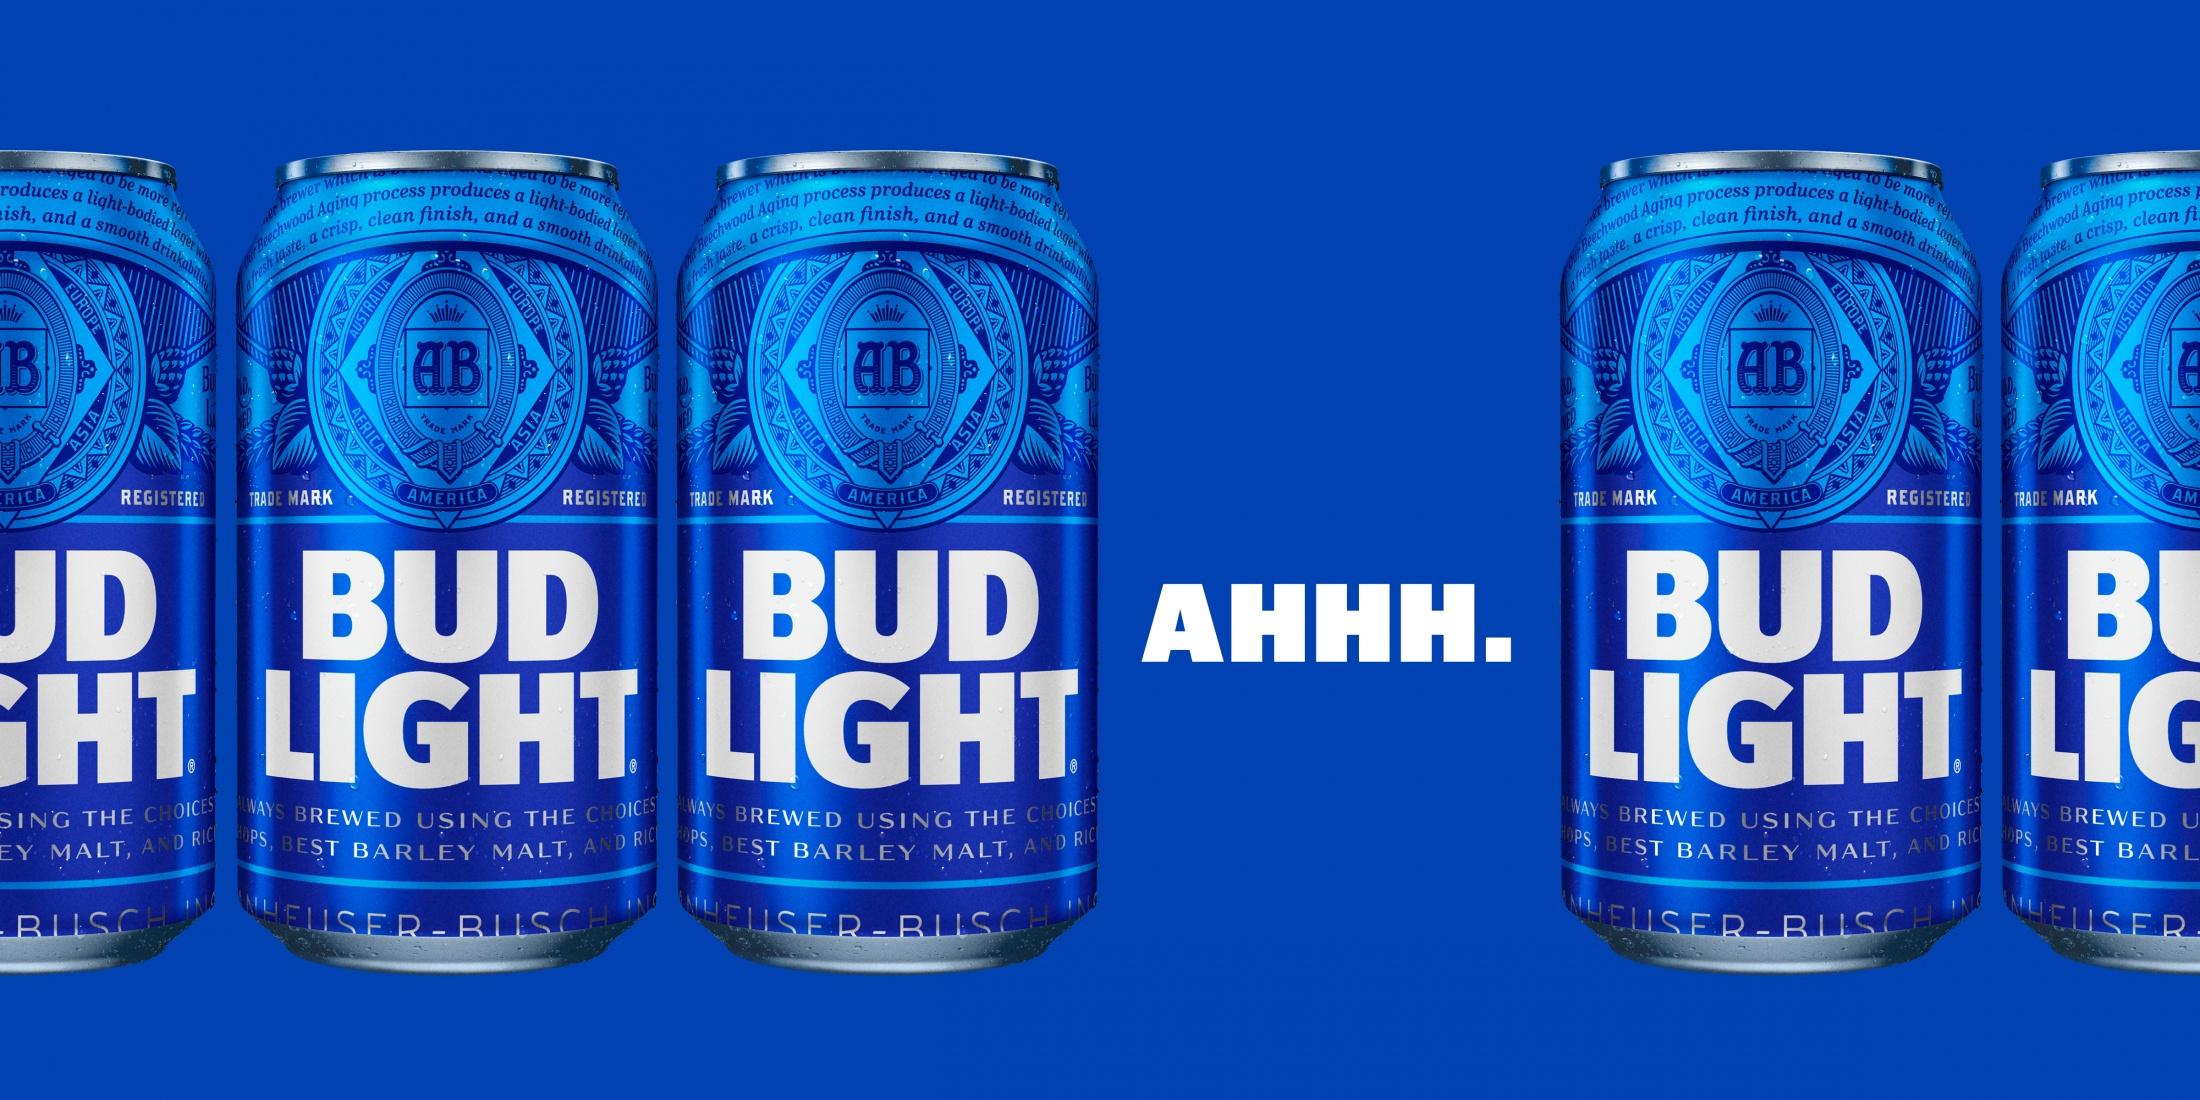 Image Media For Bud Light Rebrand